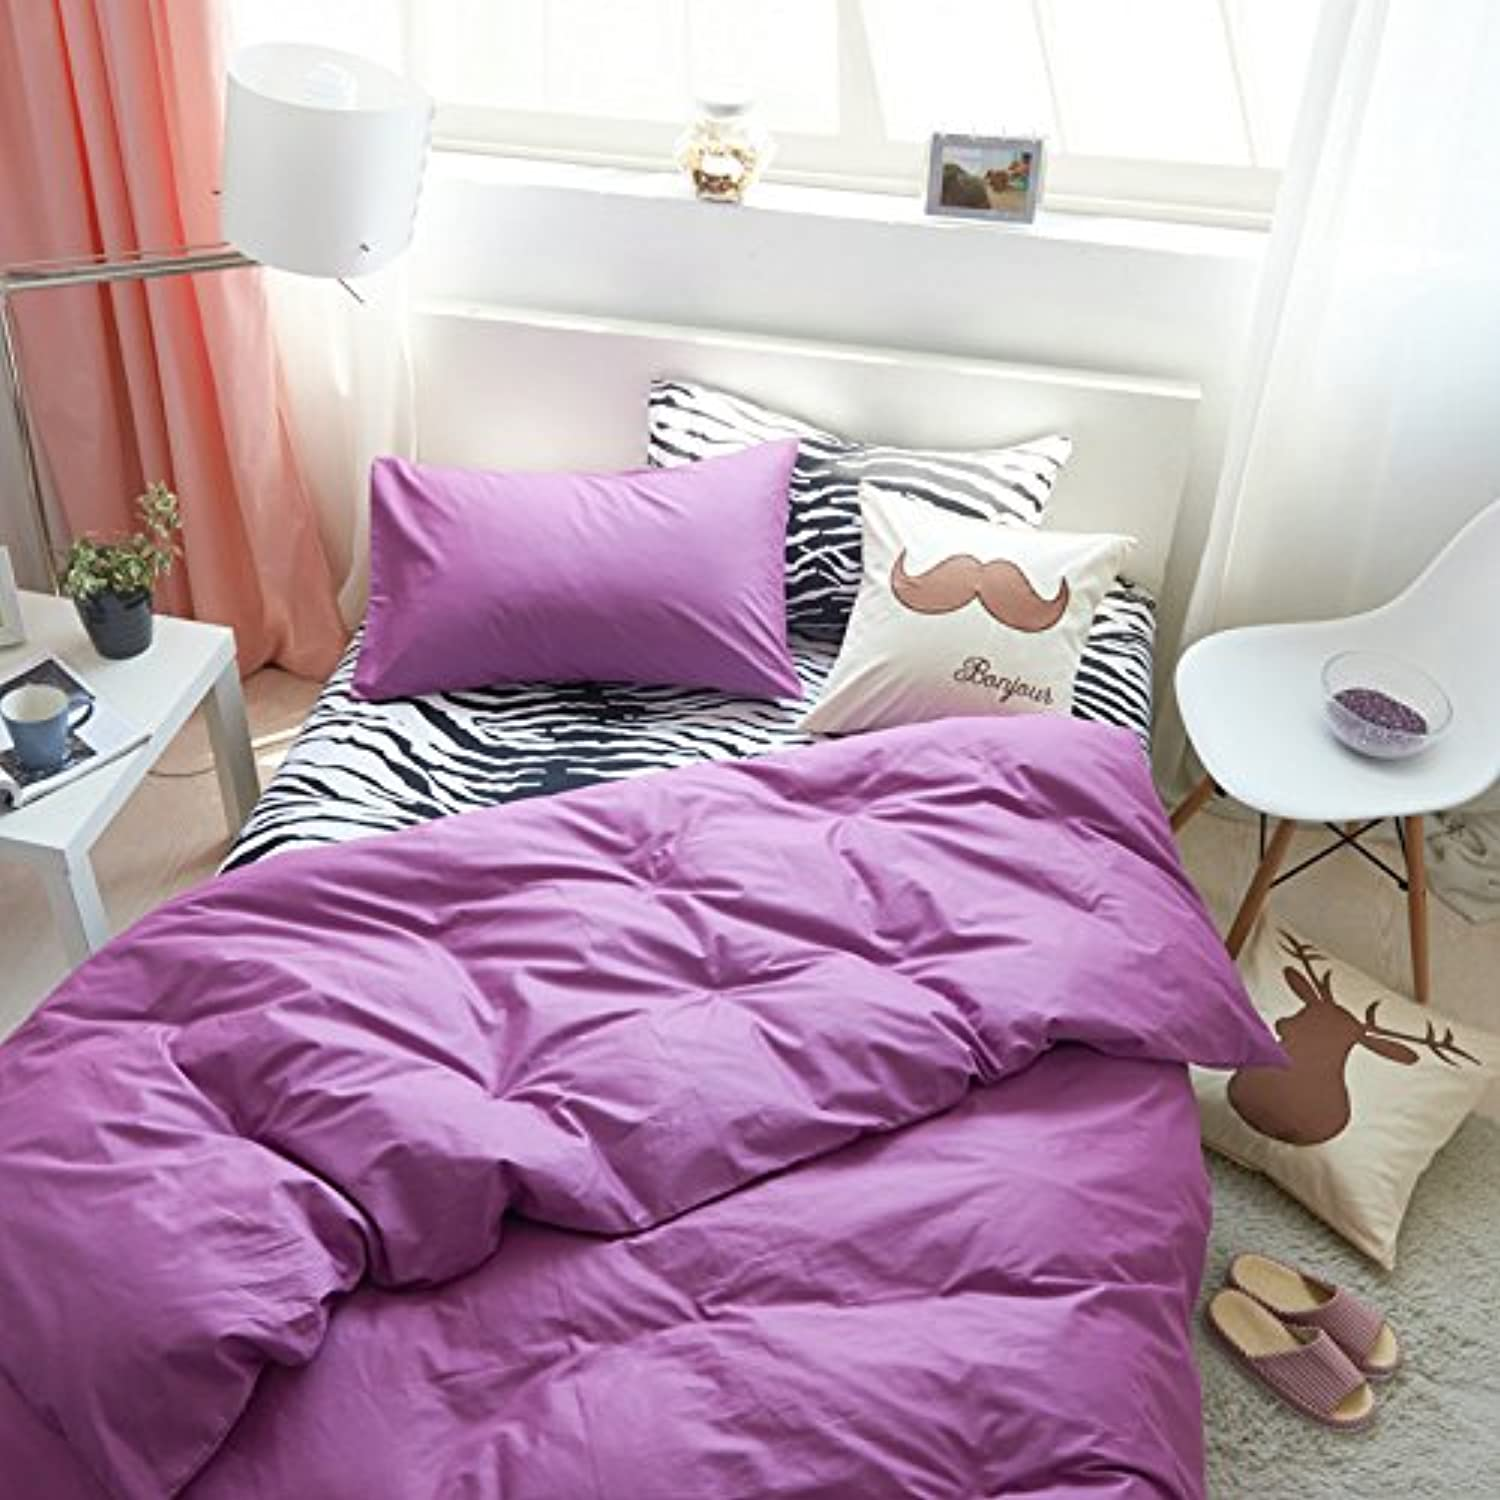 Duvet Duvet Duvet Cover & Pillowcase Set Bedding King Queen Bedding Bedroom Daybed,I Queen B071K8VNWG 90bd03